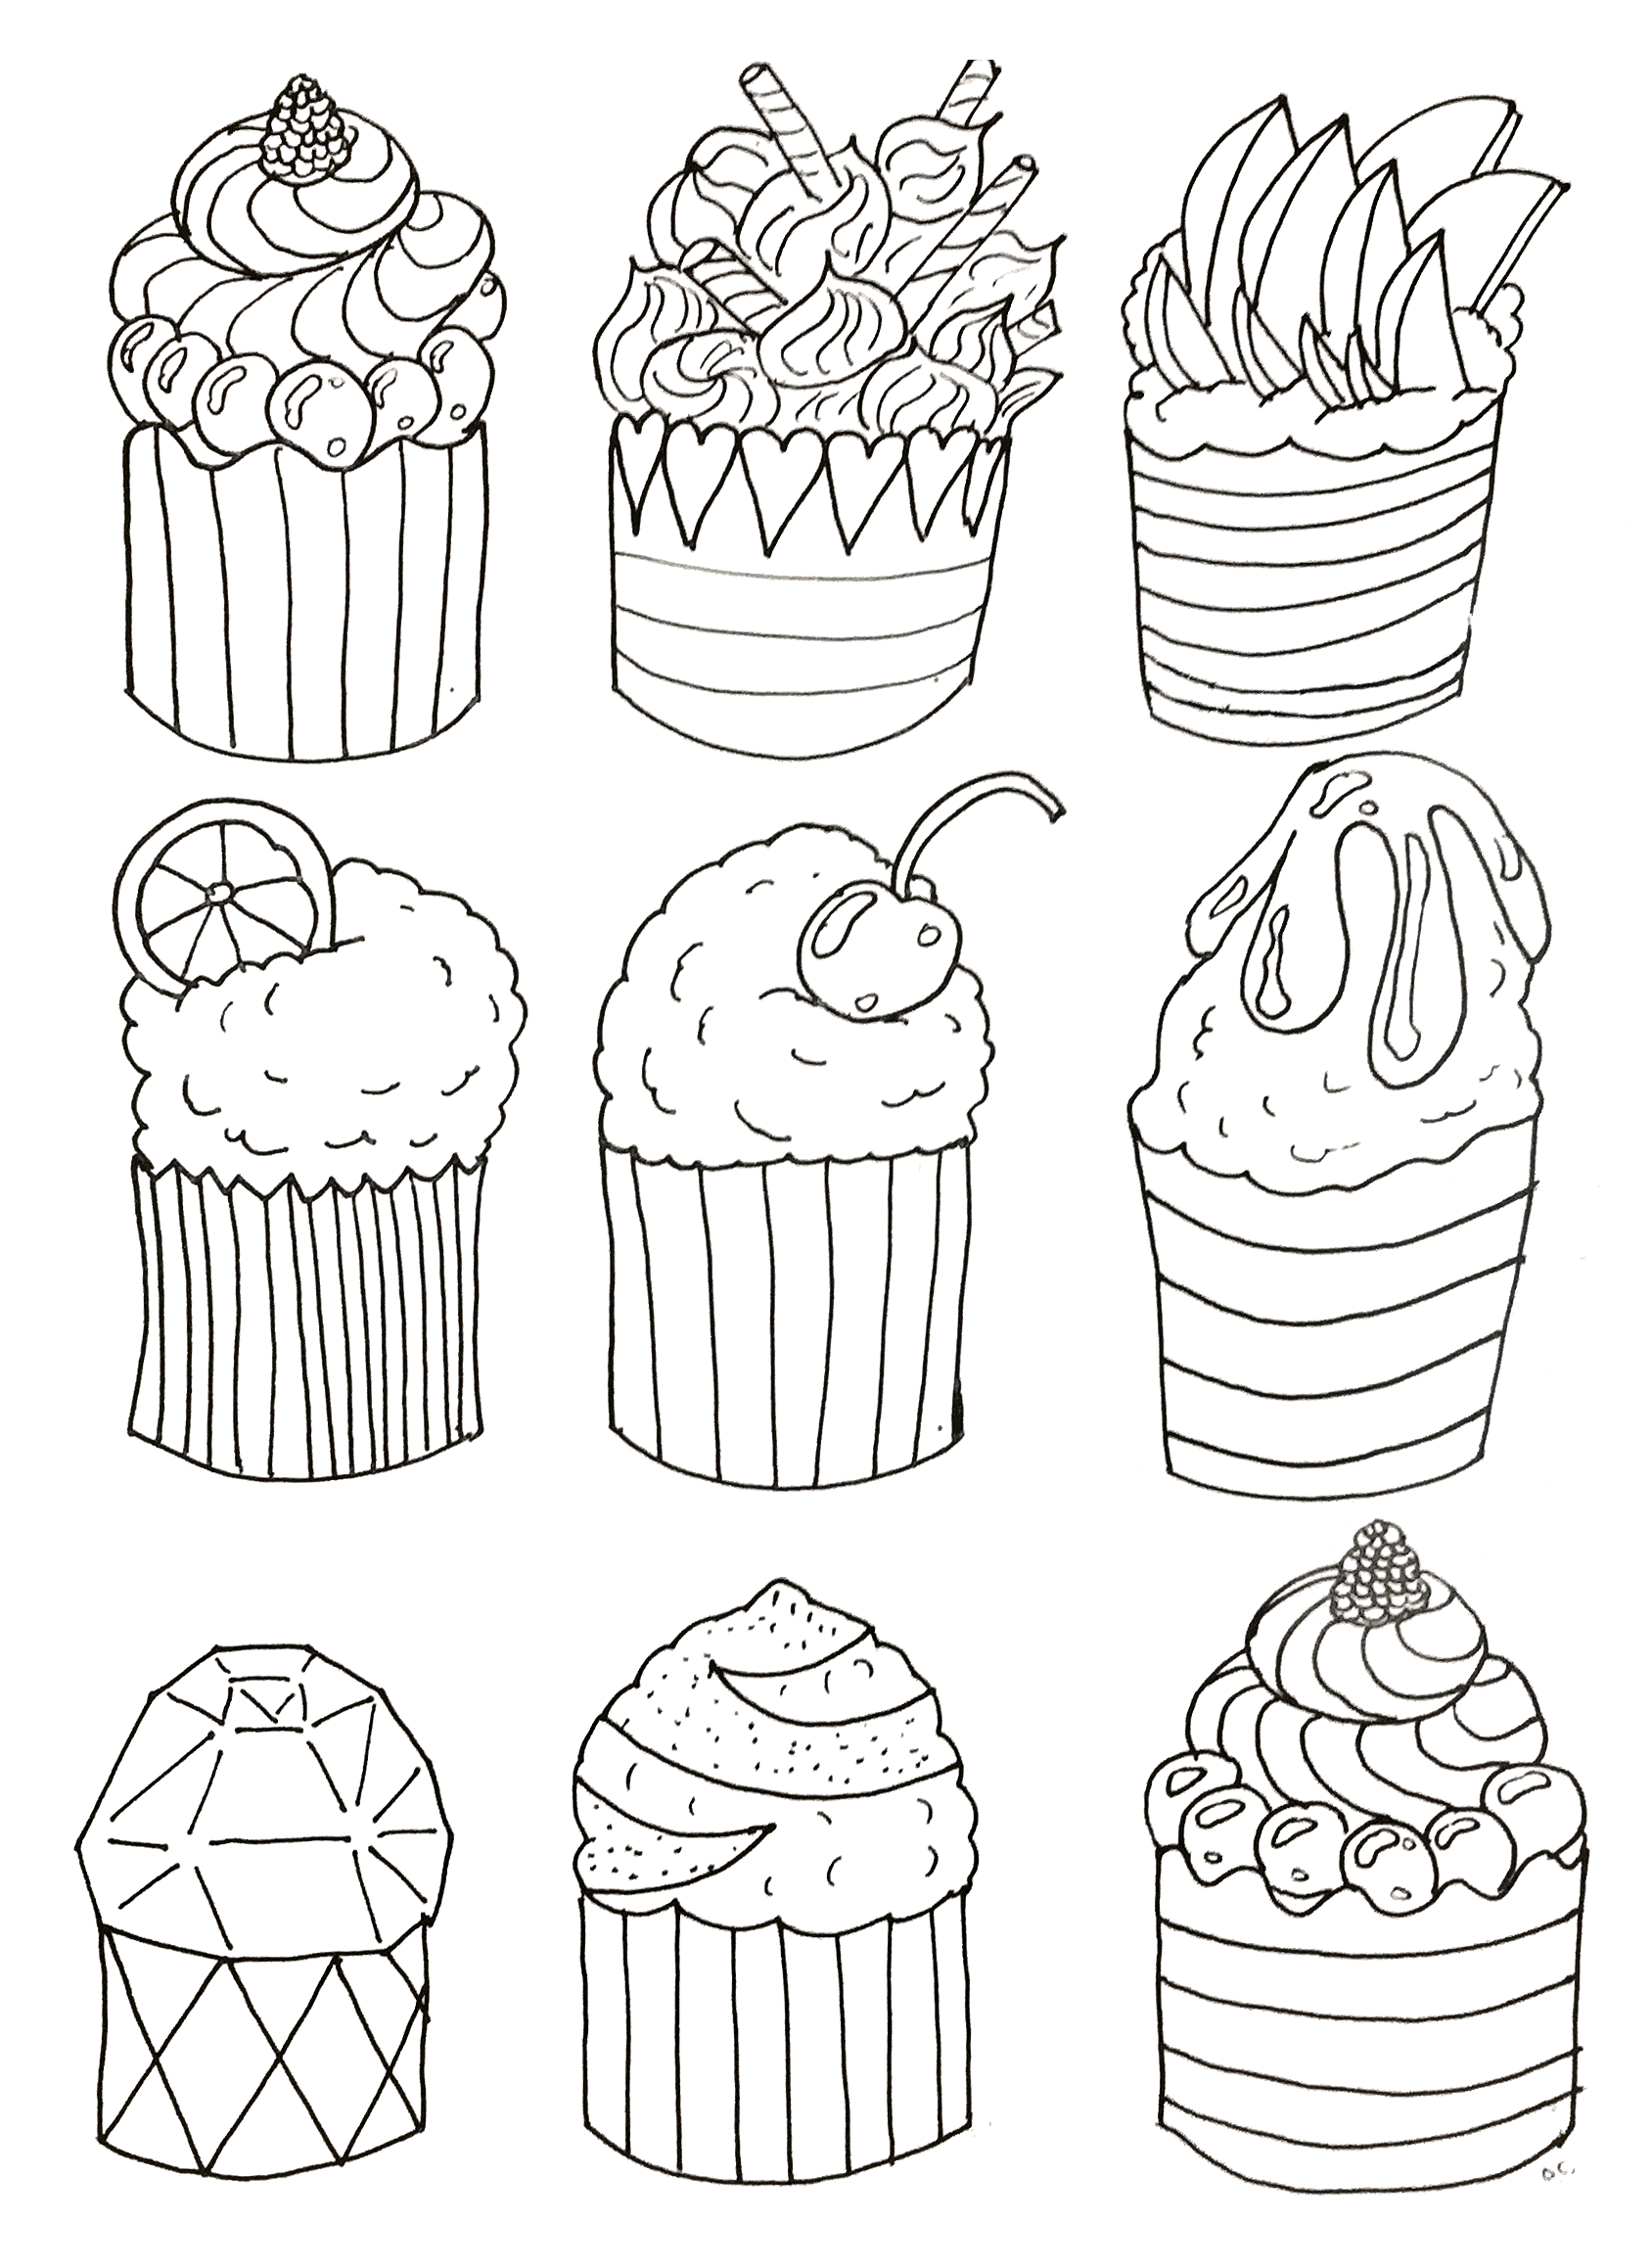 Simple cupcakes coloring page, original drawing to print